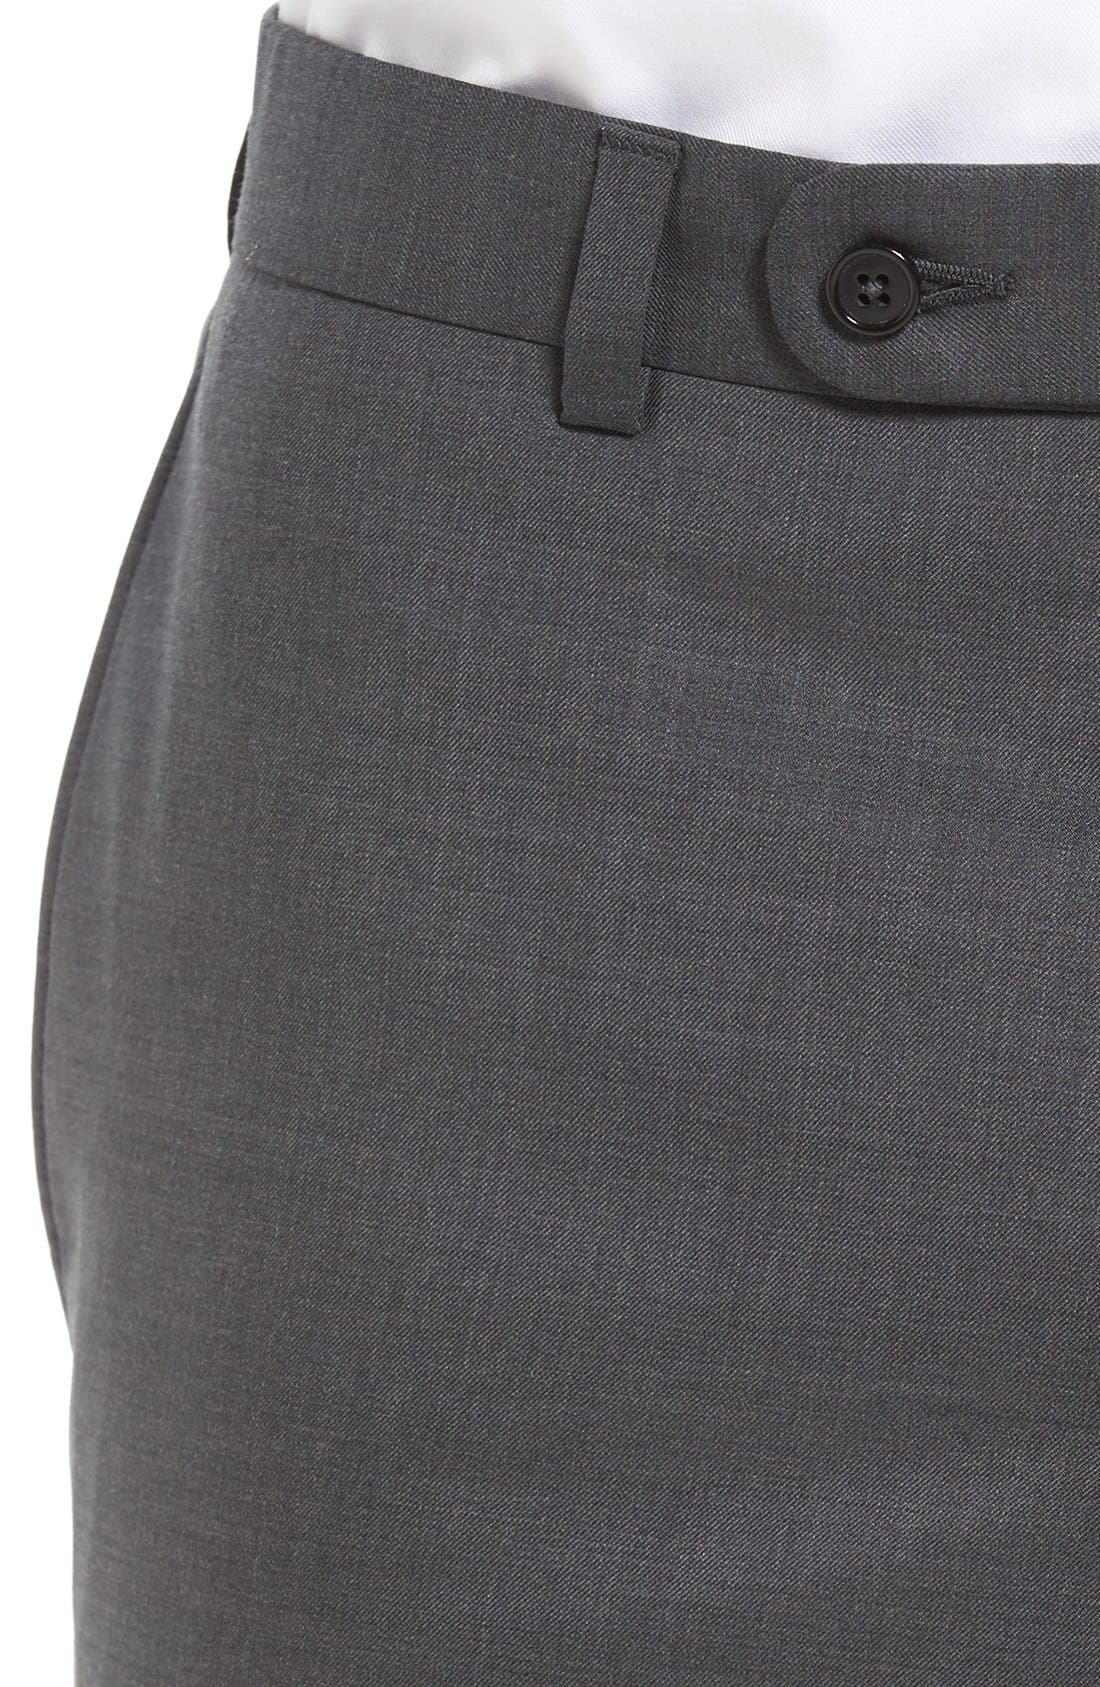 Ryan Regular Fit Wool Trousers,                             Alternate thumbnail 4, color,                             CHARCOAL